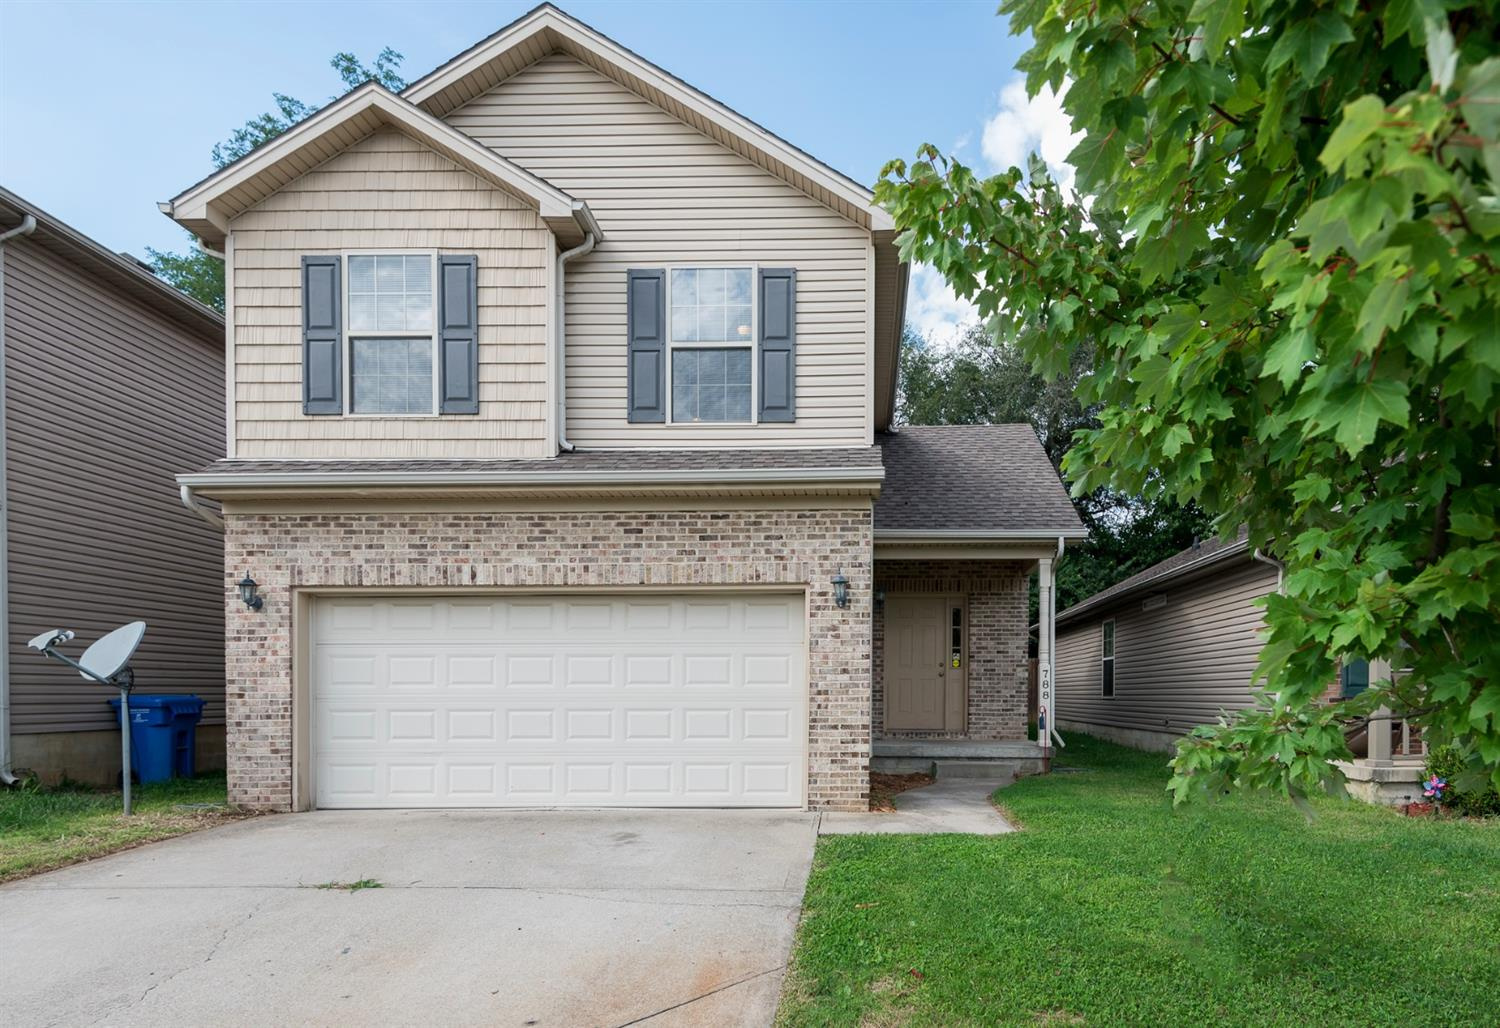 Nice,%20move-in%20ready%204%20bedroom%20home%20with%20a%20great%20open%20floor%20plan.%20Great%20Room%20features%20a%20fireplace%20and%20custom%20built-in.%20Kitchen%20has%20beautiful%20cabinetry,%20with%20plenty%20of%20storage,%20as%20well%20as%20lots%20of%20counter%20space%20and%20a%20pantry.%201st%20floor%20master%20suite%20has%20good-size%20bedroom%20and%20an%20ensuite%20bathroom%20with%20a%20double-sink%20vanity%20and%20a%20separate%20tub%20and%20shower.%20Whether%20you%20are%20looking%20for%20additional%20play%20or%20work%20space,%20you%20will%20enjoy%20the%20loft%20area.%20Upstairs%20you%20will%20also%20find%203%20additional%20bedrooms,%20all%20of%20which%20are%20generously-sized%20with%20lots%20of%20closet%20space.%20Home%20has%20a%20convenient,%20separate%20utility%20room,%20allowing%20for%20even%20more%20storage.%20Step%20into%20the%20backyard%20and%20relax%20or%20barbecue%20on%20the%20patio.%20You%20don't%20want%20to%20miss%20your%20chance%20to%20see%20this%20home!%20Call%20today%20for%20your%20private%20showing!